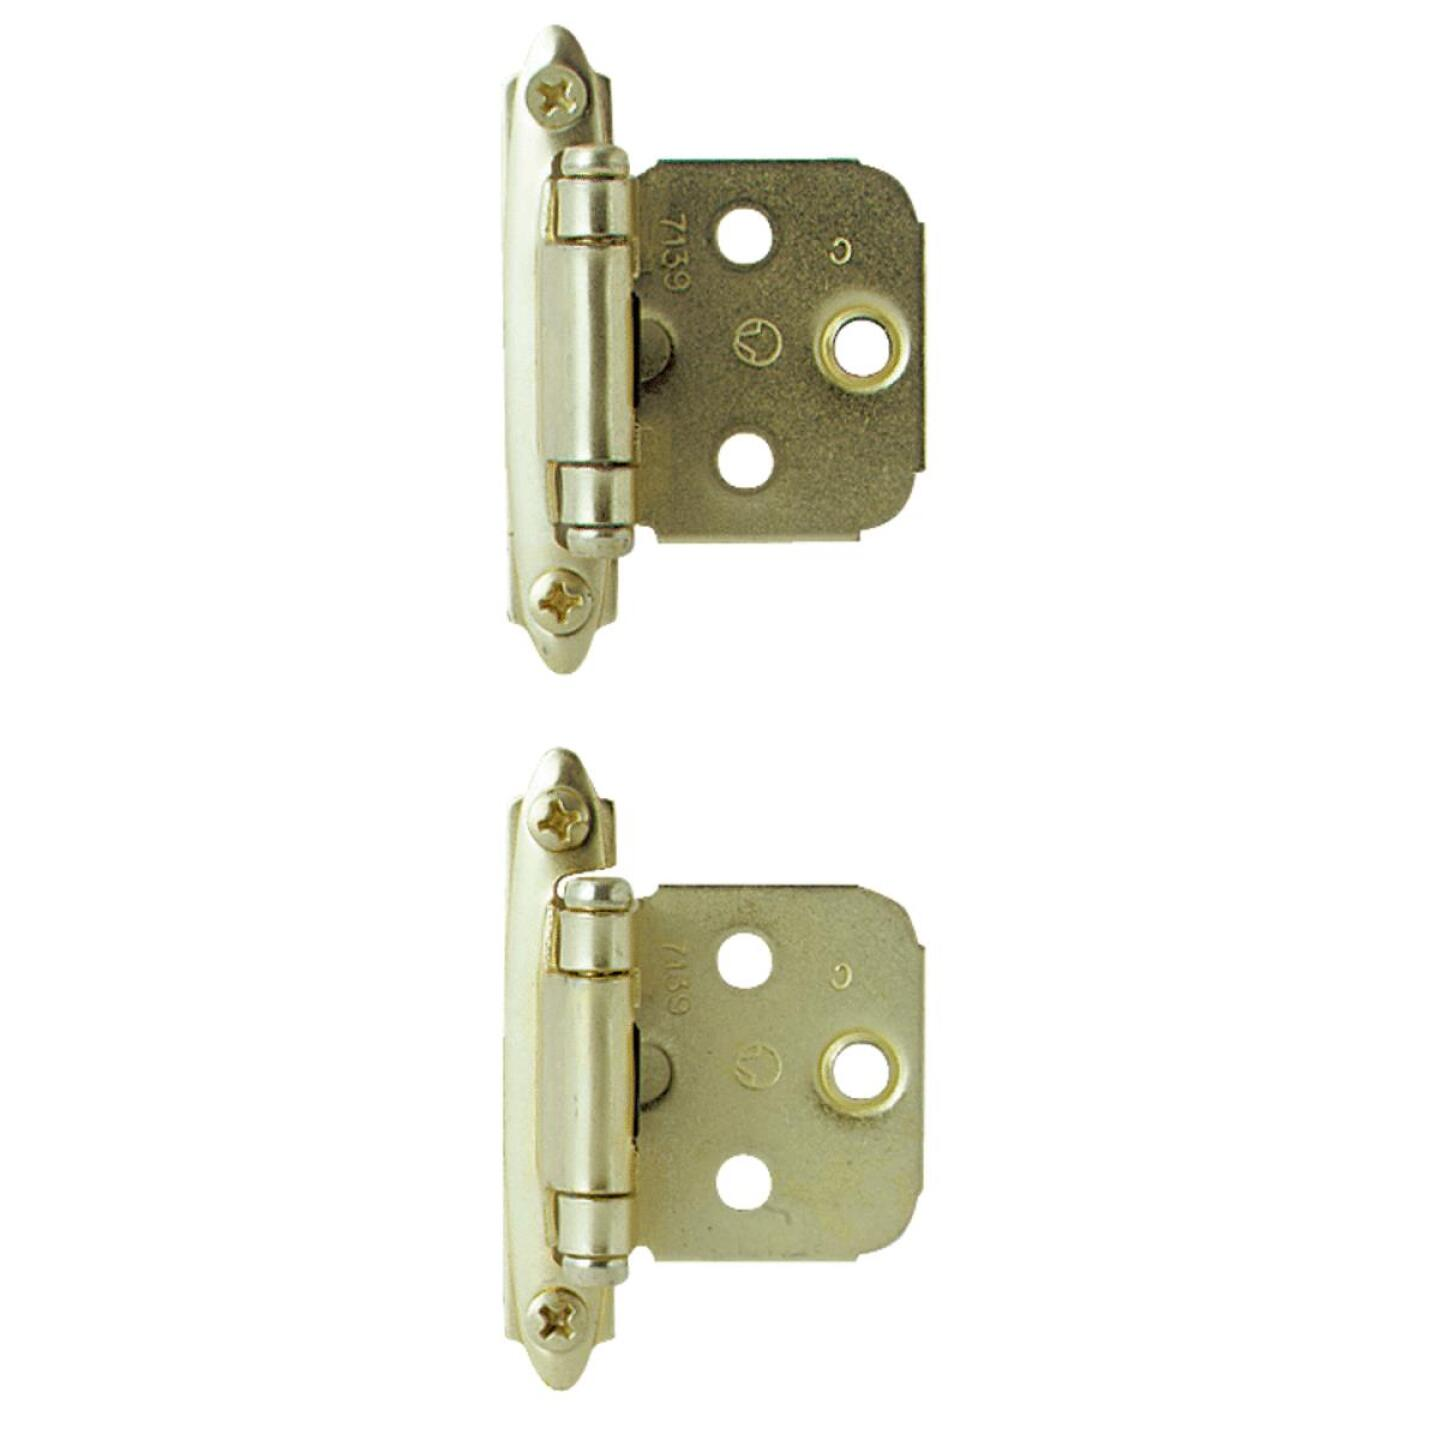 Amerock Polished Brass Self-Closing Face Mount Overlay Hinge (2-Pack) Image 1